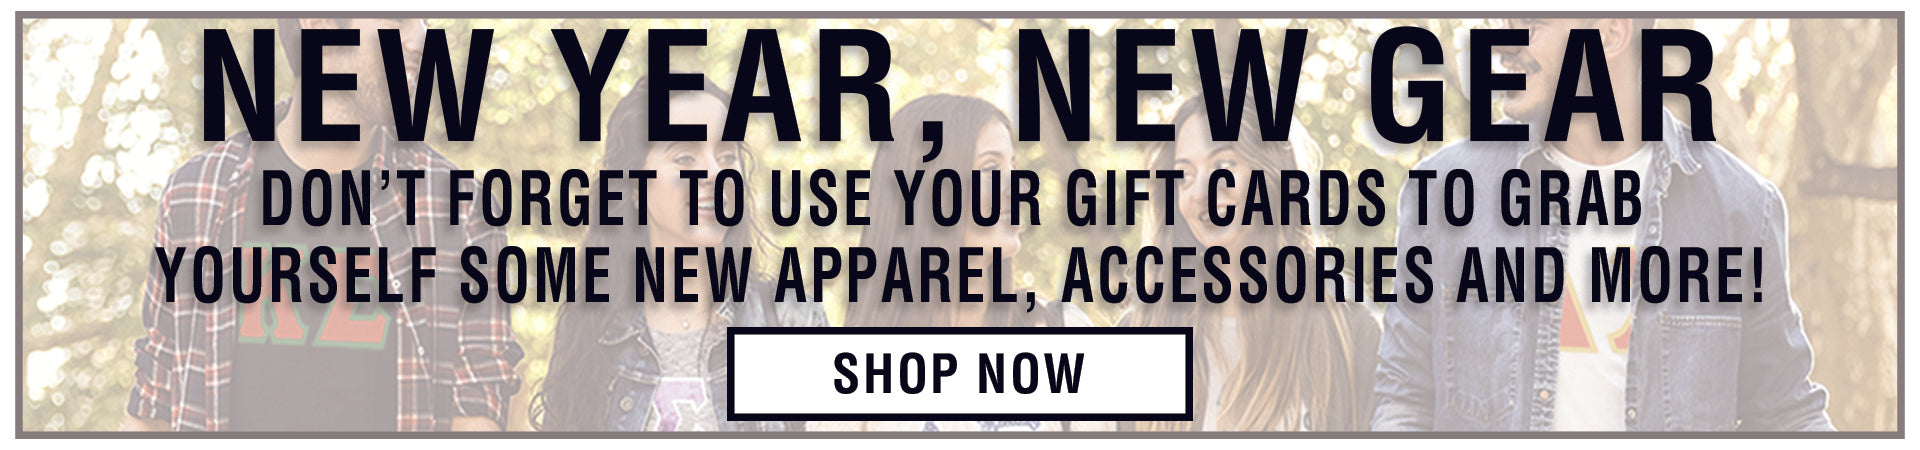 Don't Forget to Use Your Gift Cards to Grab Yourself Some New Apparel, Accessories, and More!